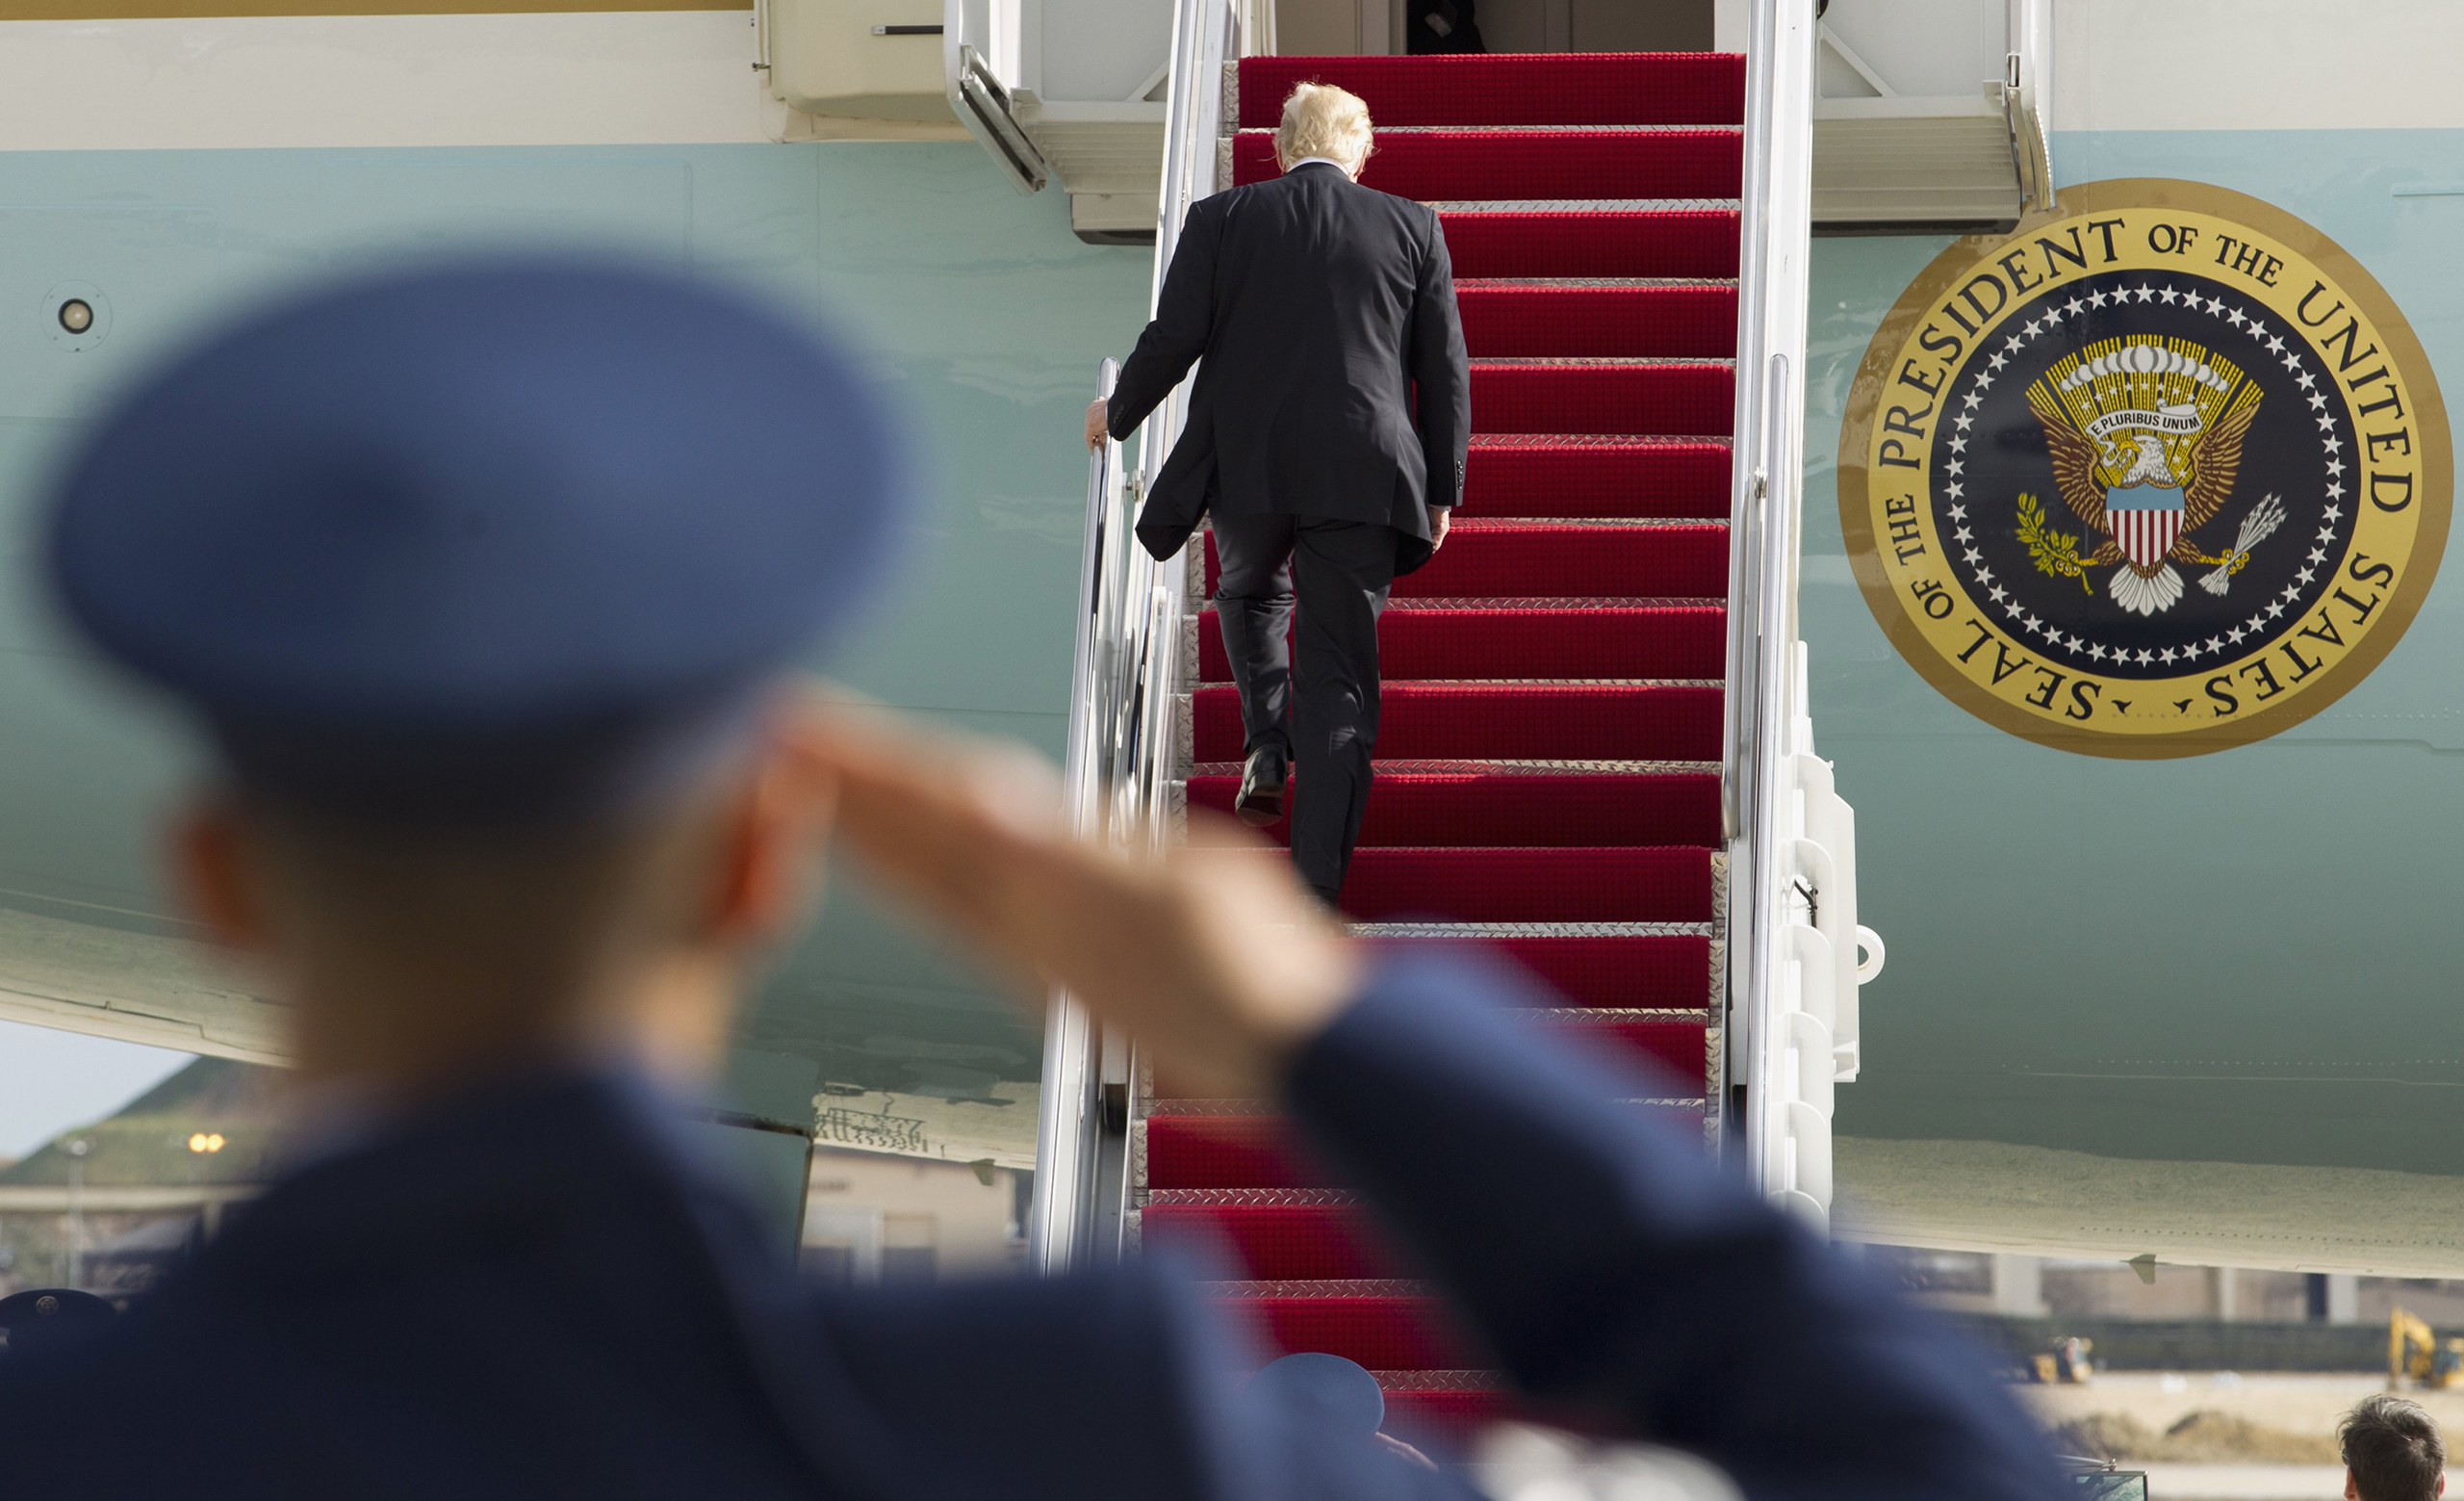 President Donald Trump is saluted as he walks up the stairs of Air Force One before departure from Andrews Air Force Base, Md., on Jan. 26, 2017.